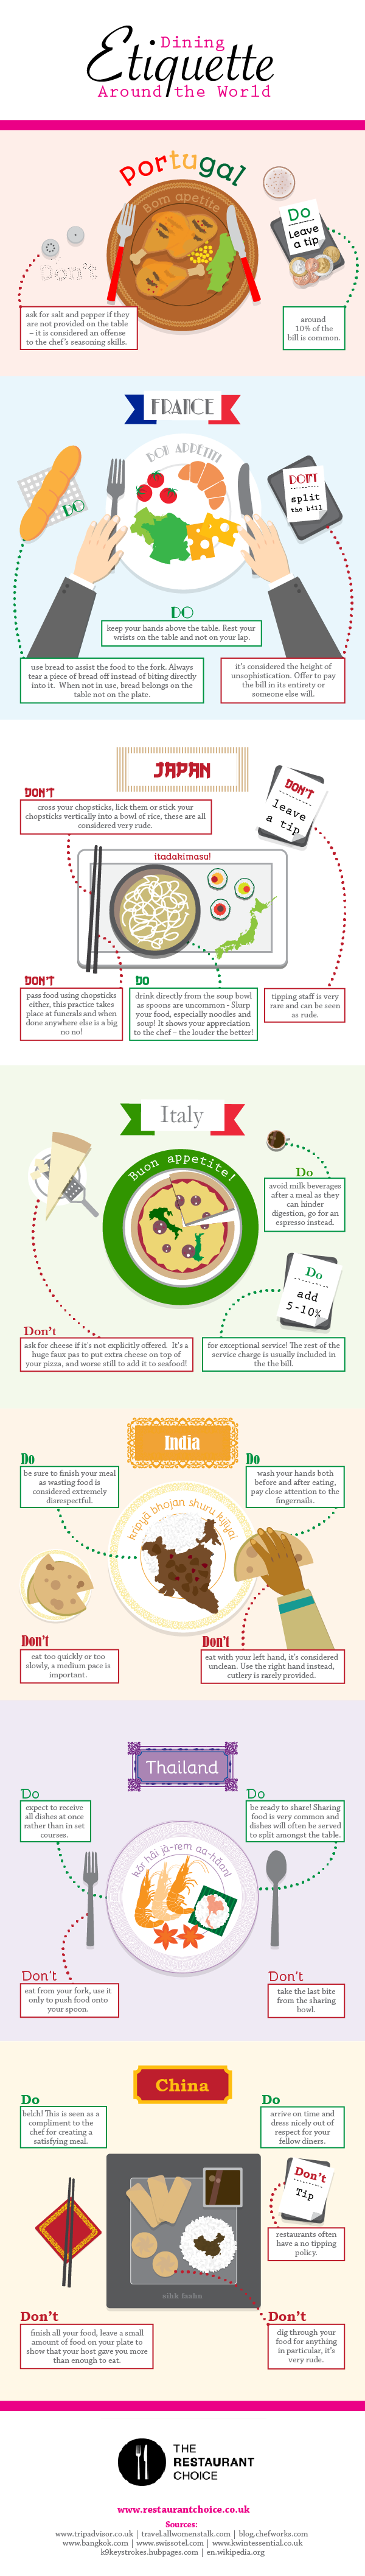 Global dining etiquette infographic